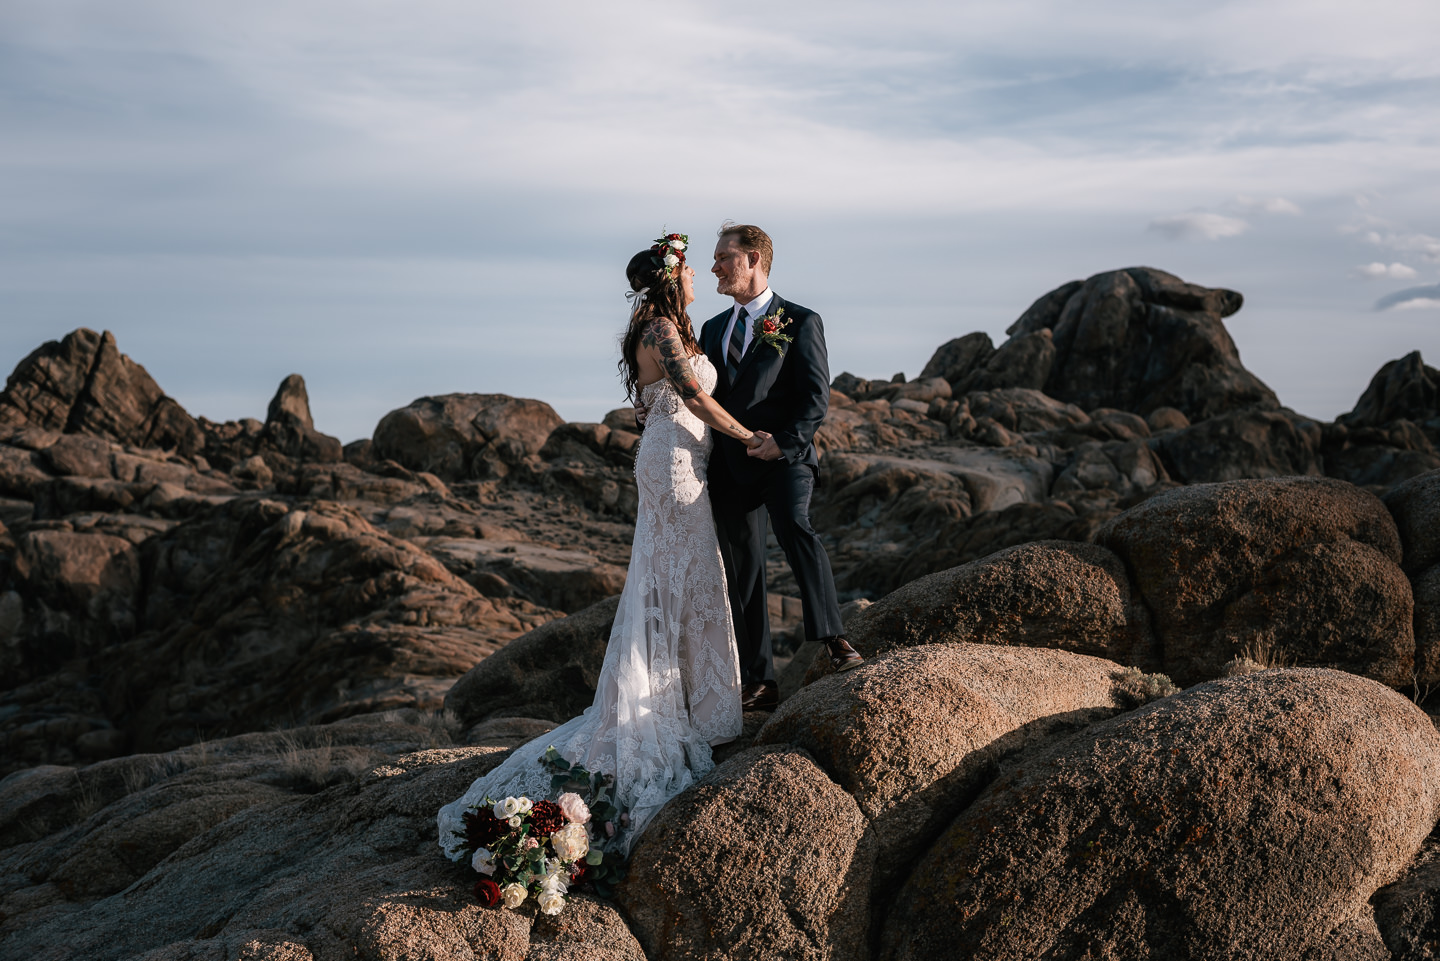 A love story to remember - This was my first elopement of 2019 and what a way to kick off my busiest year yet. These two made their elopement one I'll never forget. With a few simple touches, a copper pipe arch, a white faux fur rug, and floral details their intimate wedding ceremony in the Alabama Hills was transformed into a thing of refined beauty. But the real star of the day was the couple themselves. Be it their uncanny ability to make each other laugh, the way they made one another smile, or their heartfelt vows, these two were a pristine example of true love. But I hardly need to say anything as it will be painfully obvious from the photos below.